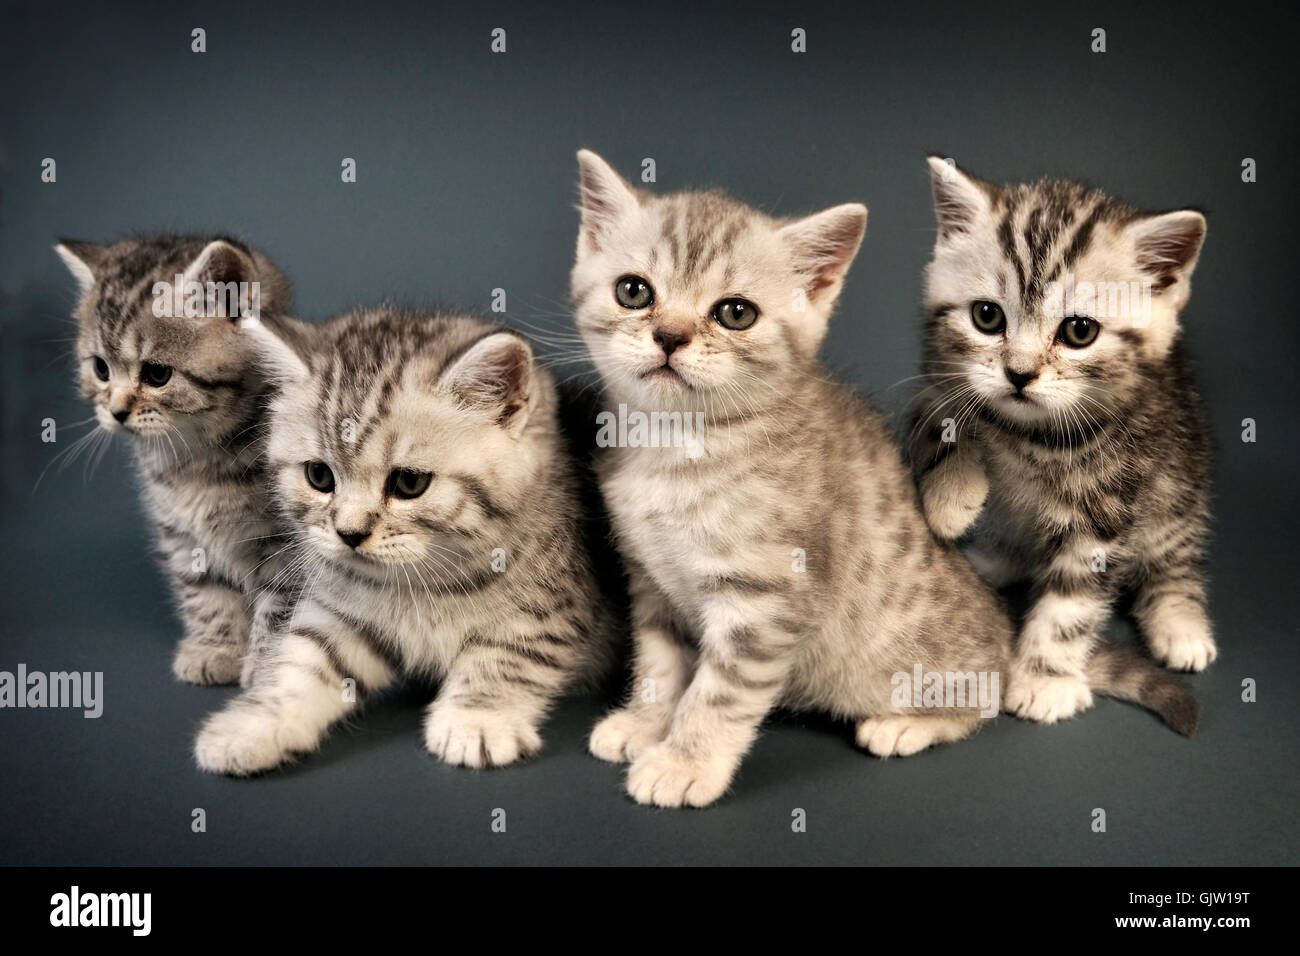 British shorthair chatons adorable animal bébé beau chat charmante compagne mignon adorable ami félin Photo Stock